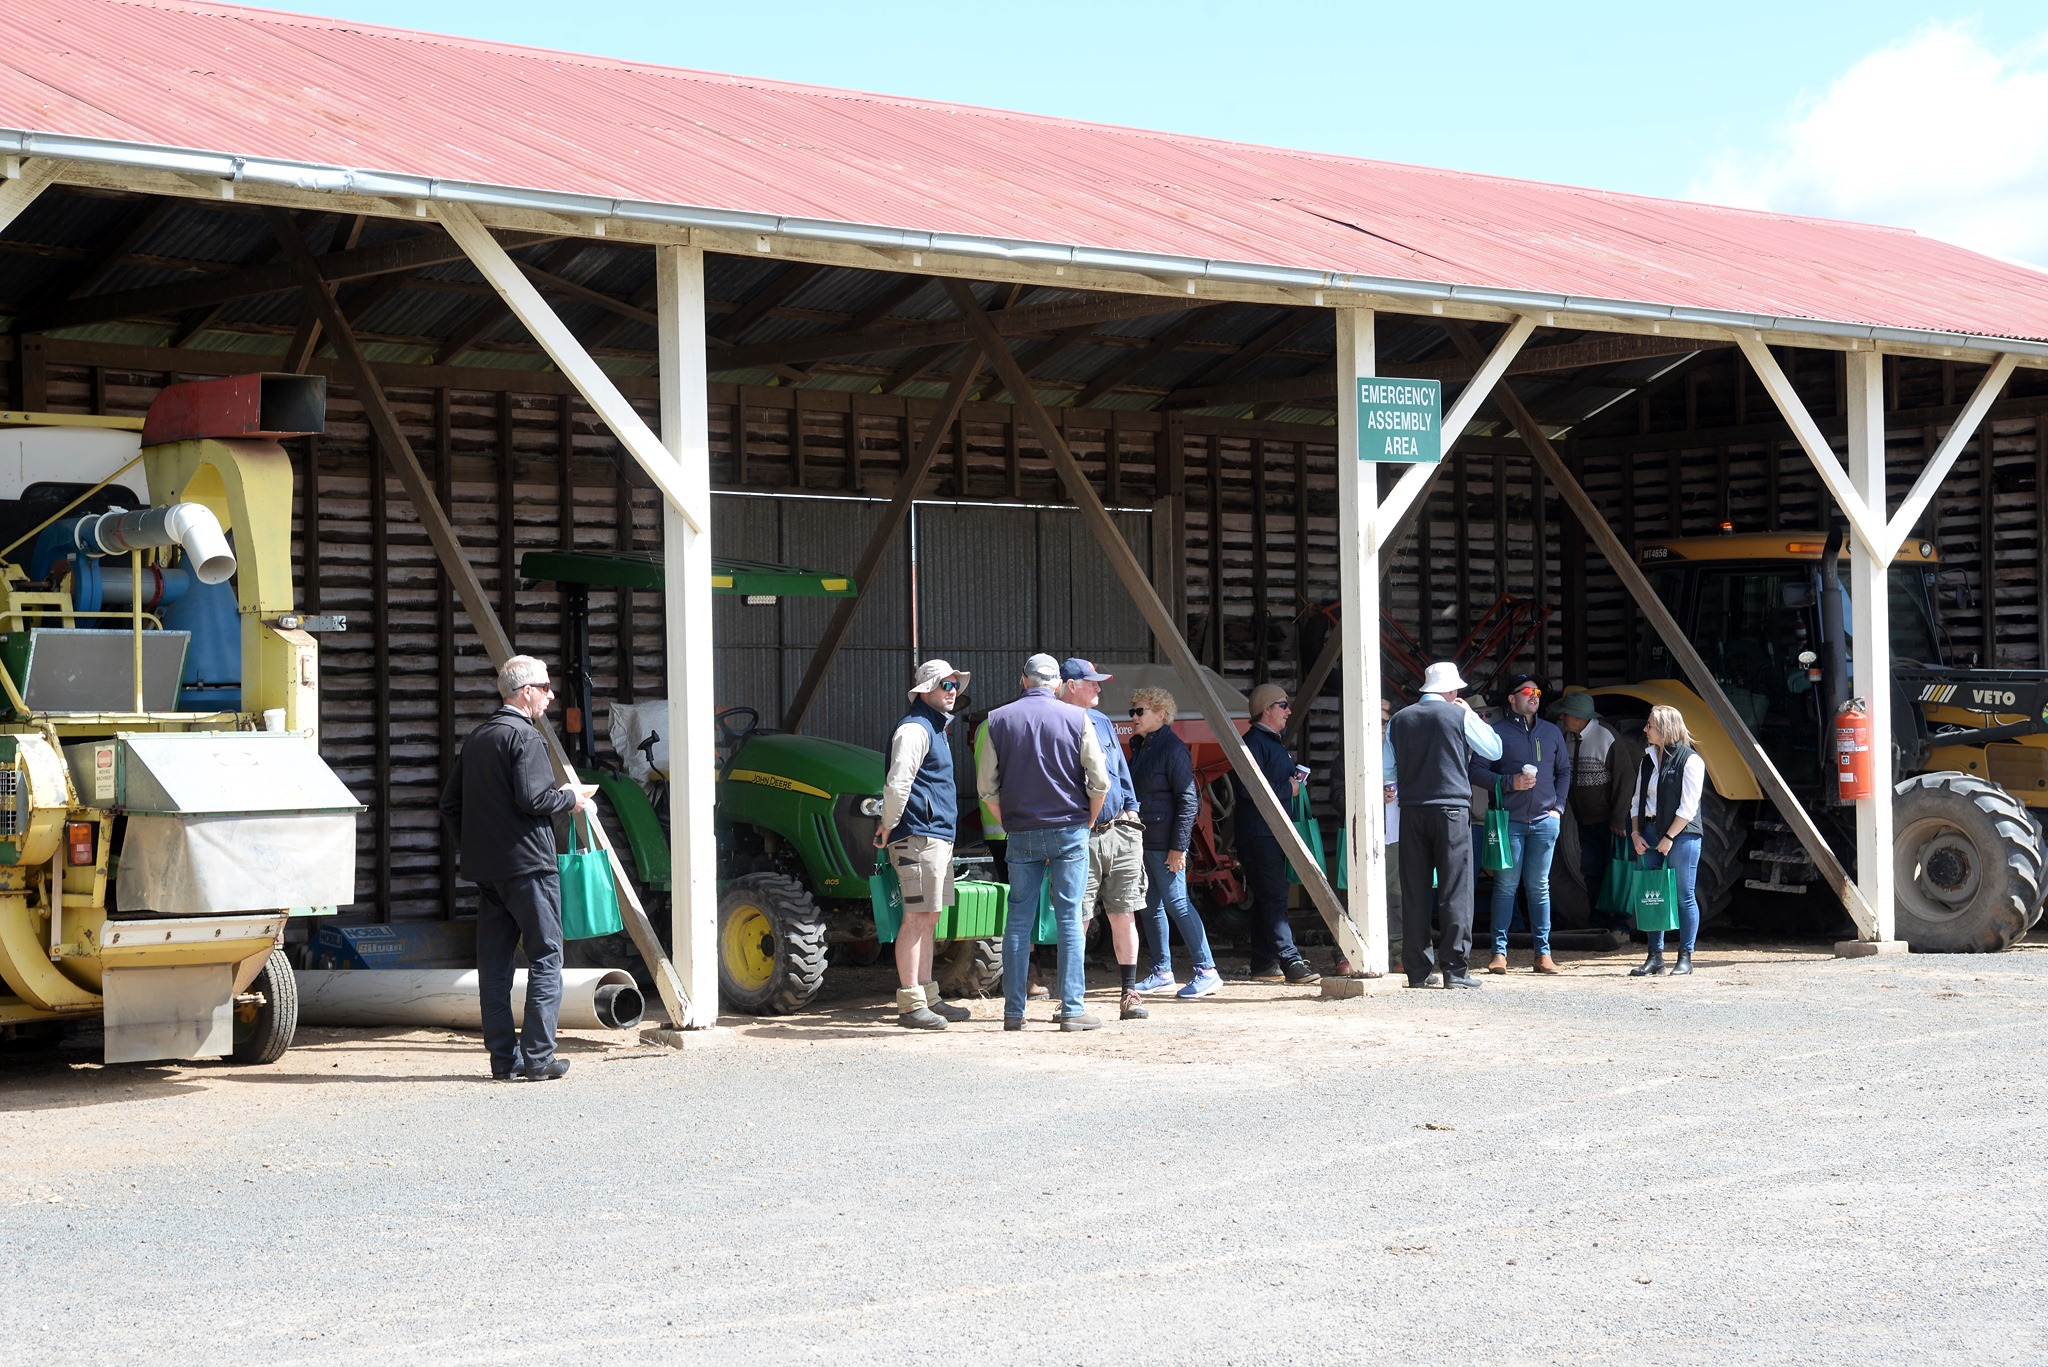 Group of people assembled by a machinery shed